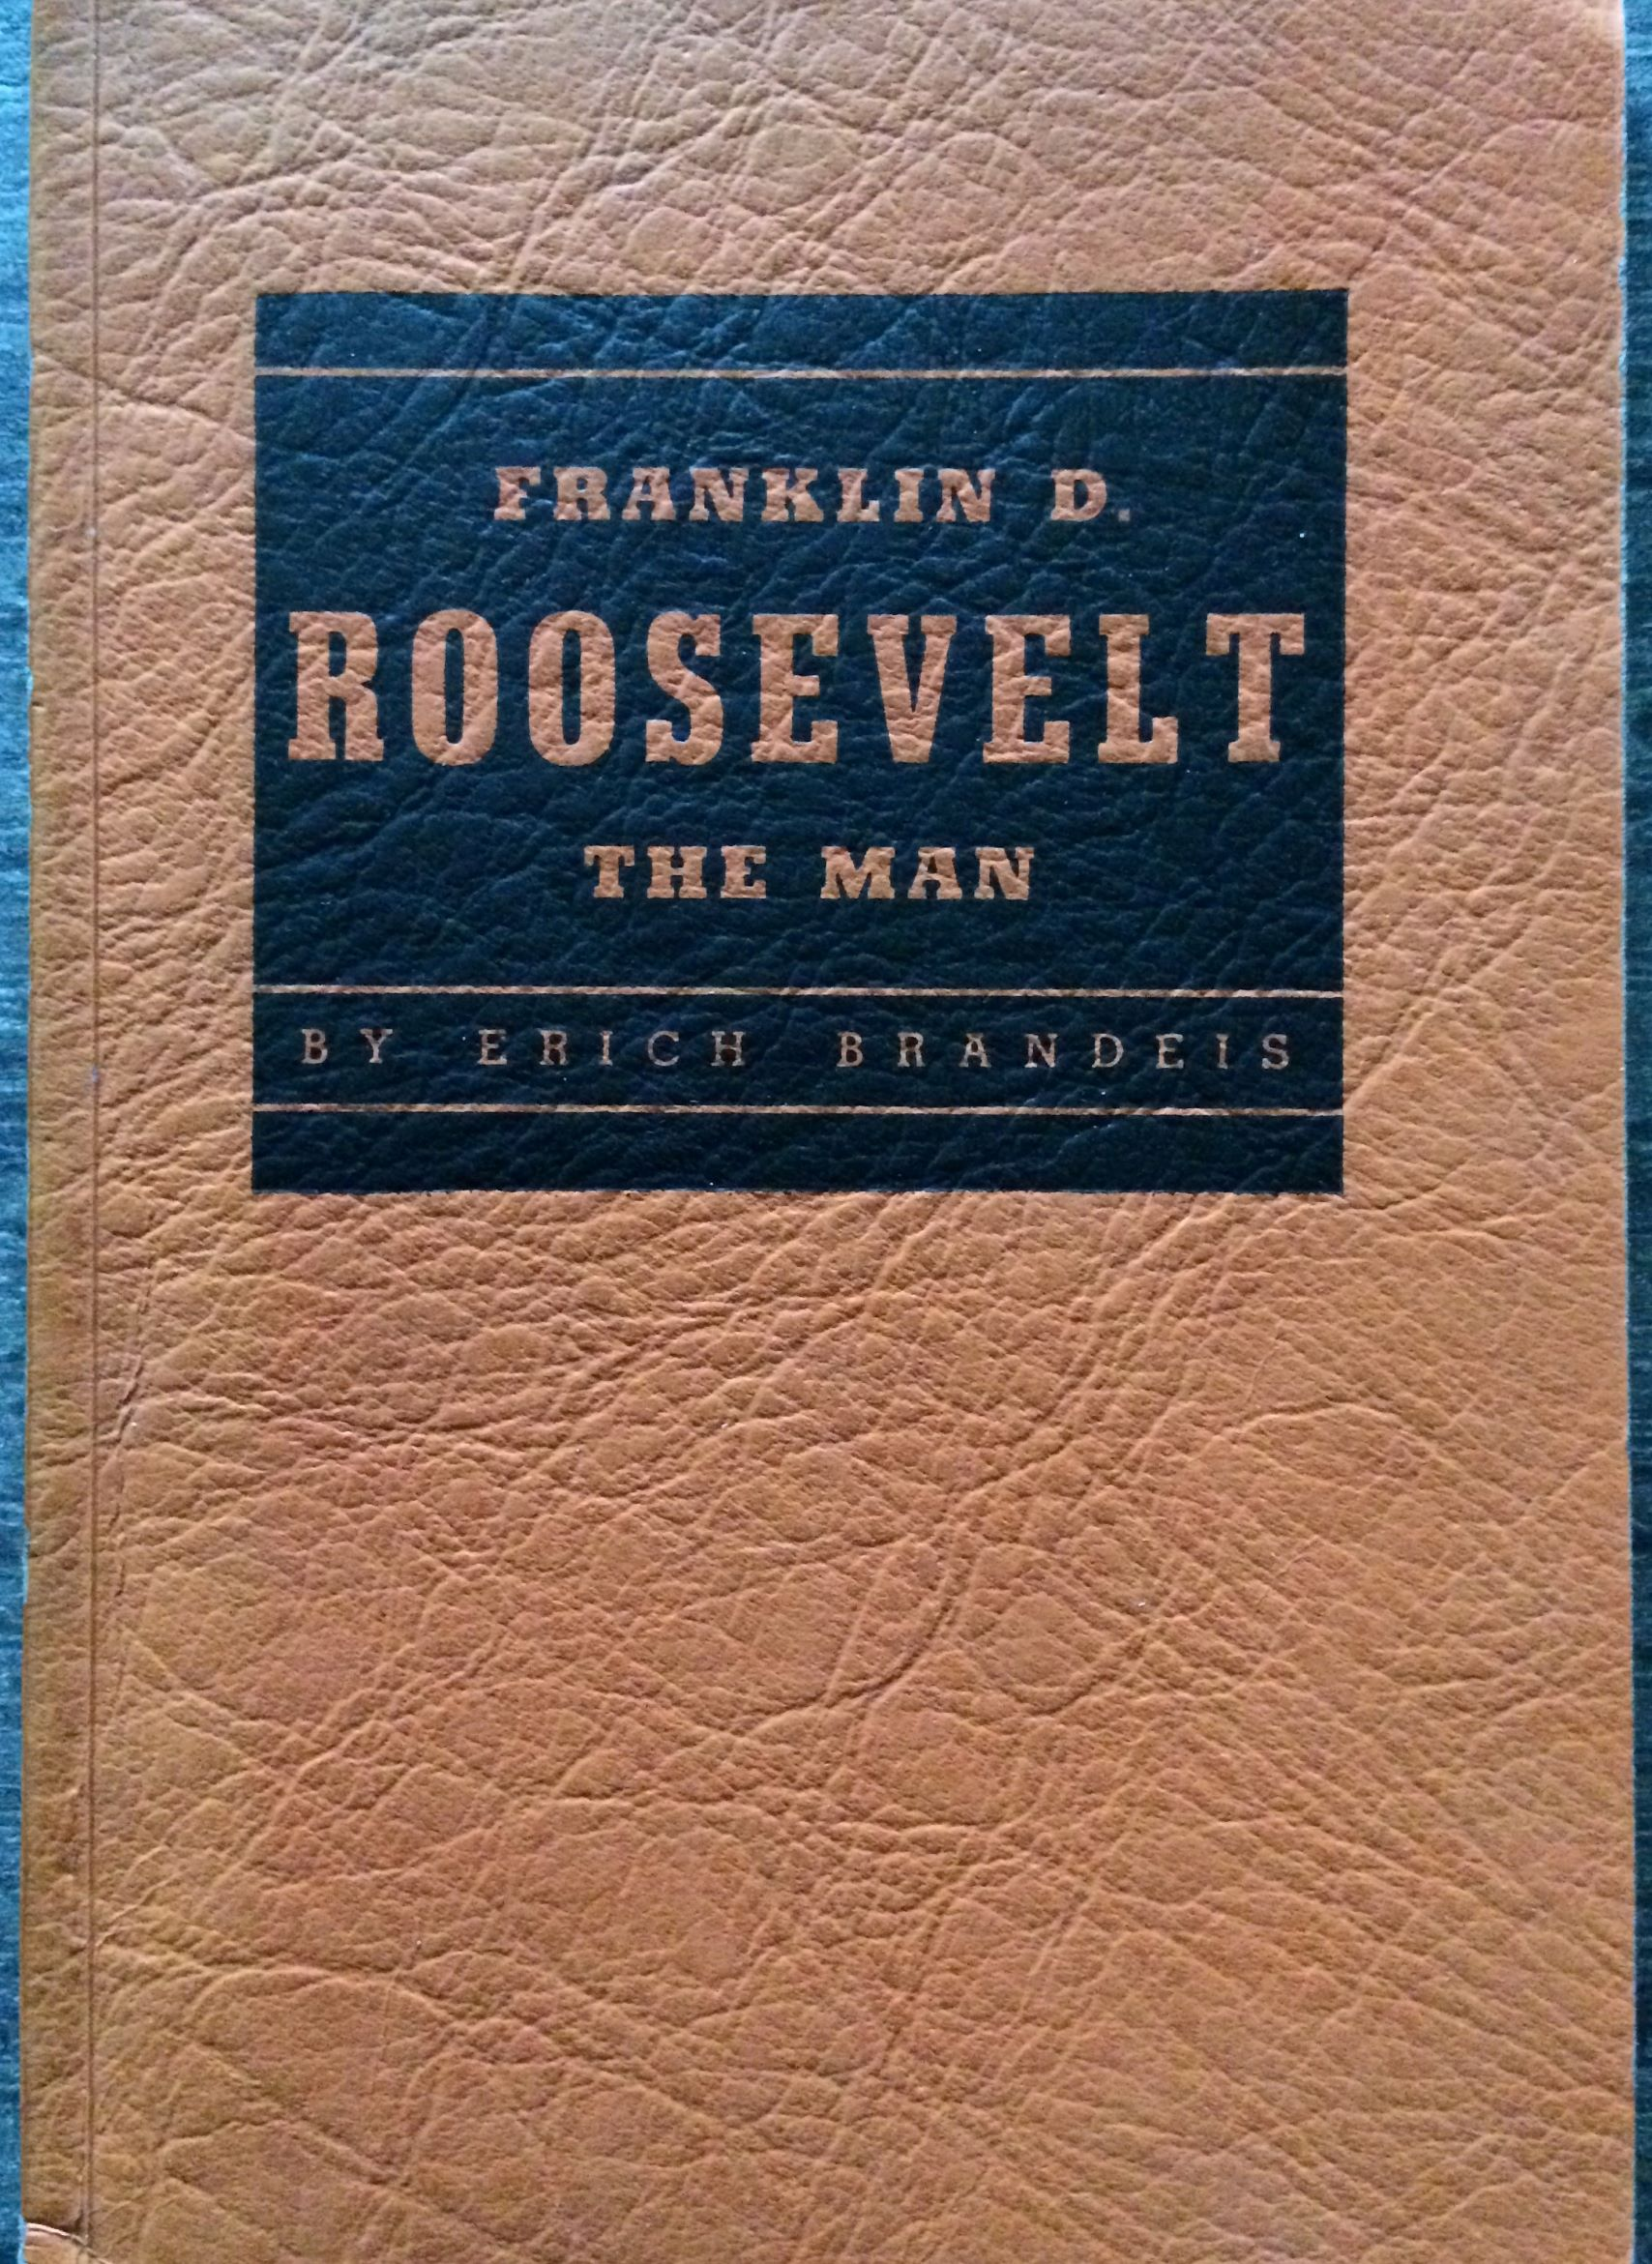 Image for Franklin D. Roosevelt, The Man.